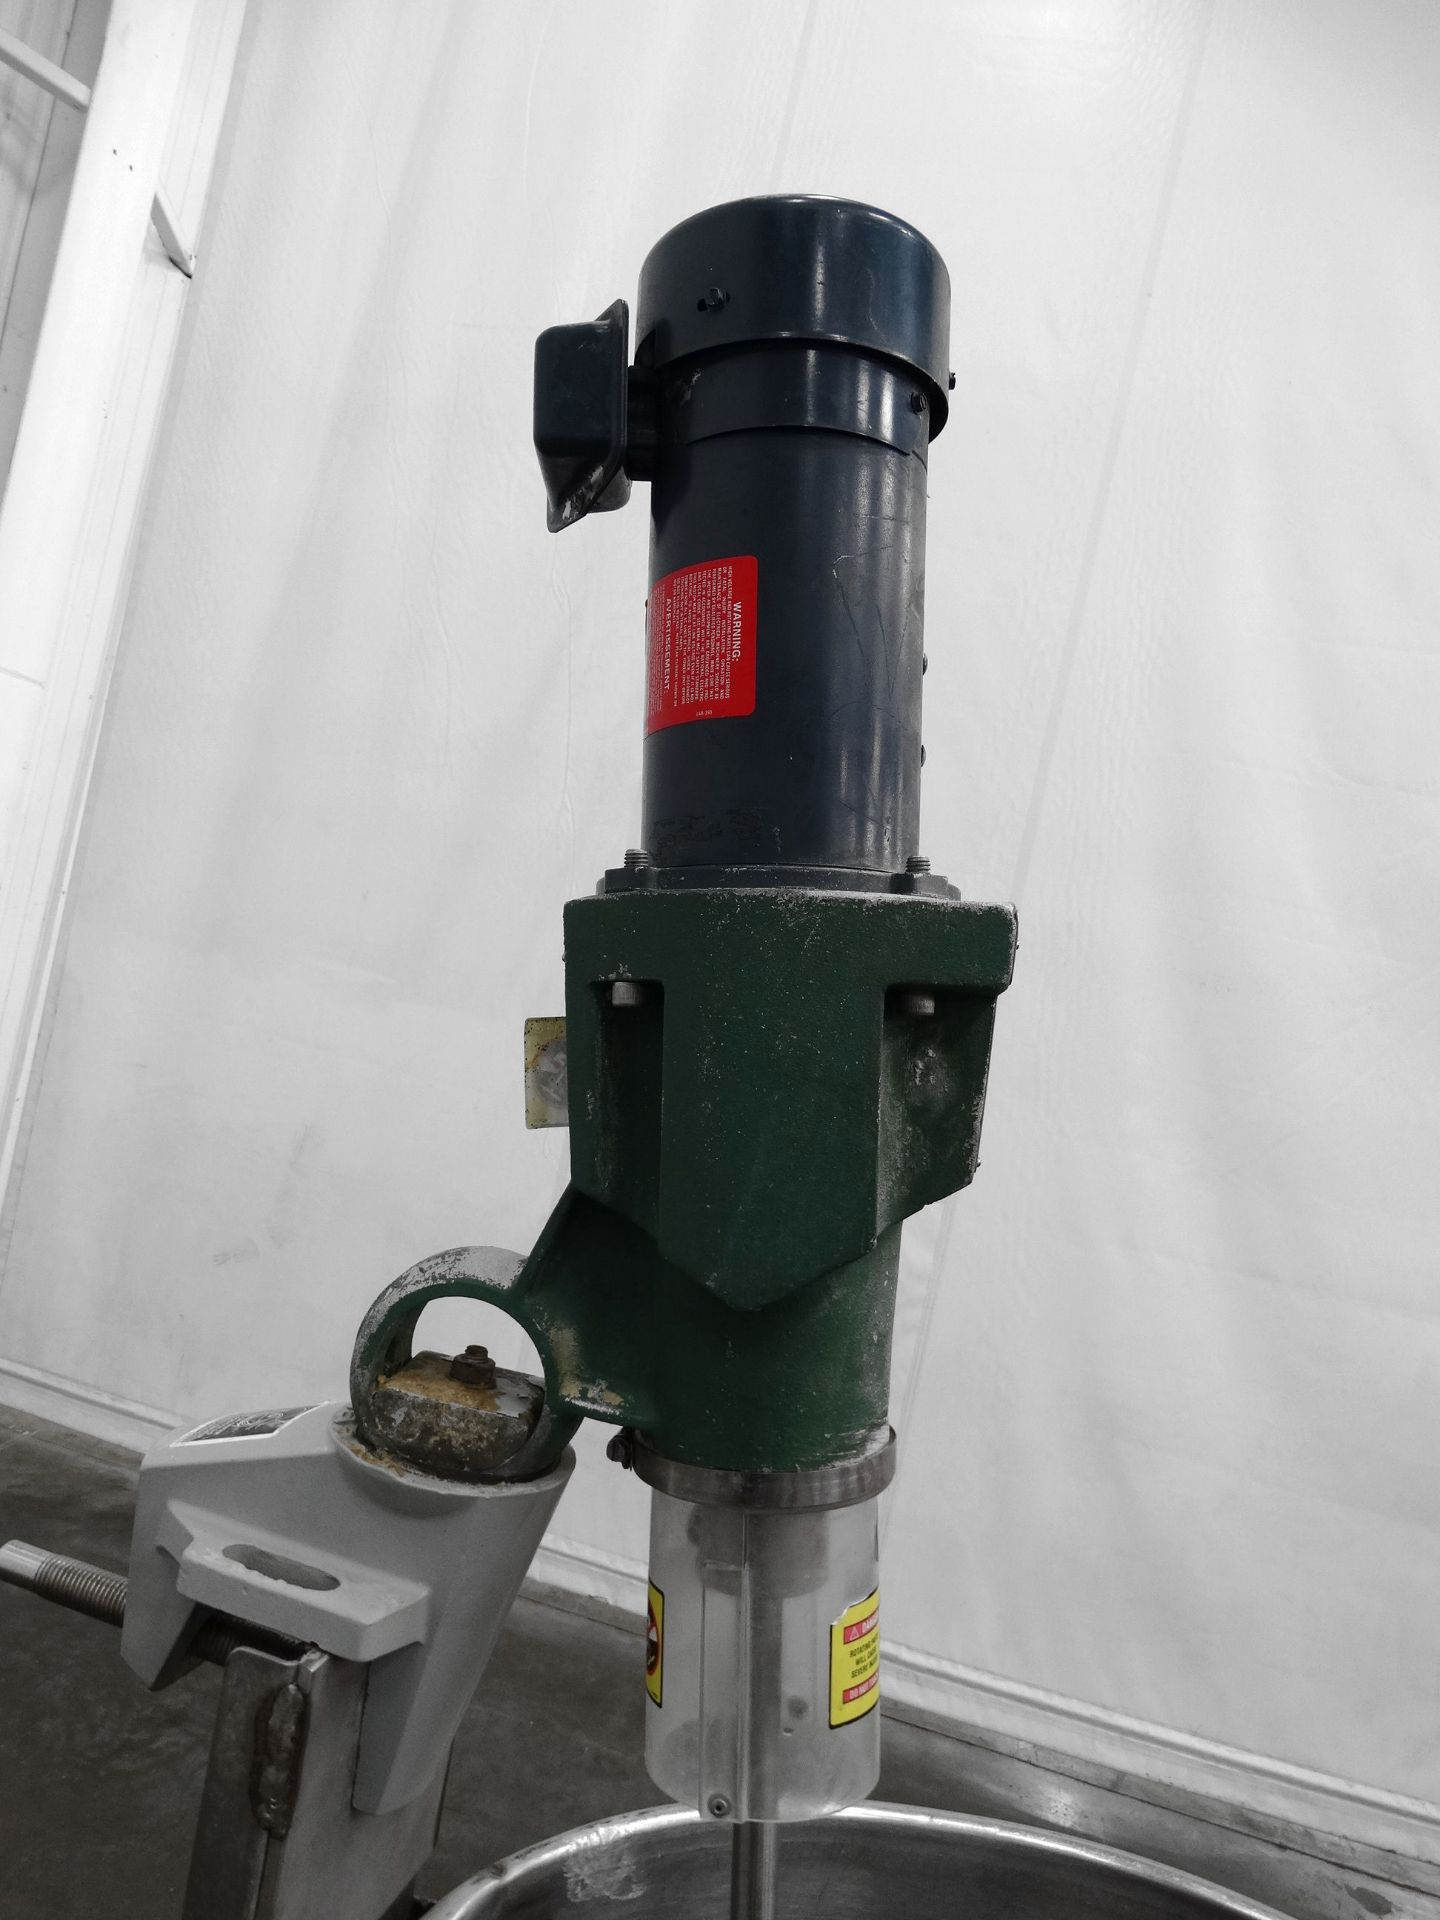 Lot 41 - Single Wall Stainless Mixing Tank 75 Gallons B8429